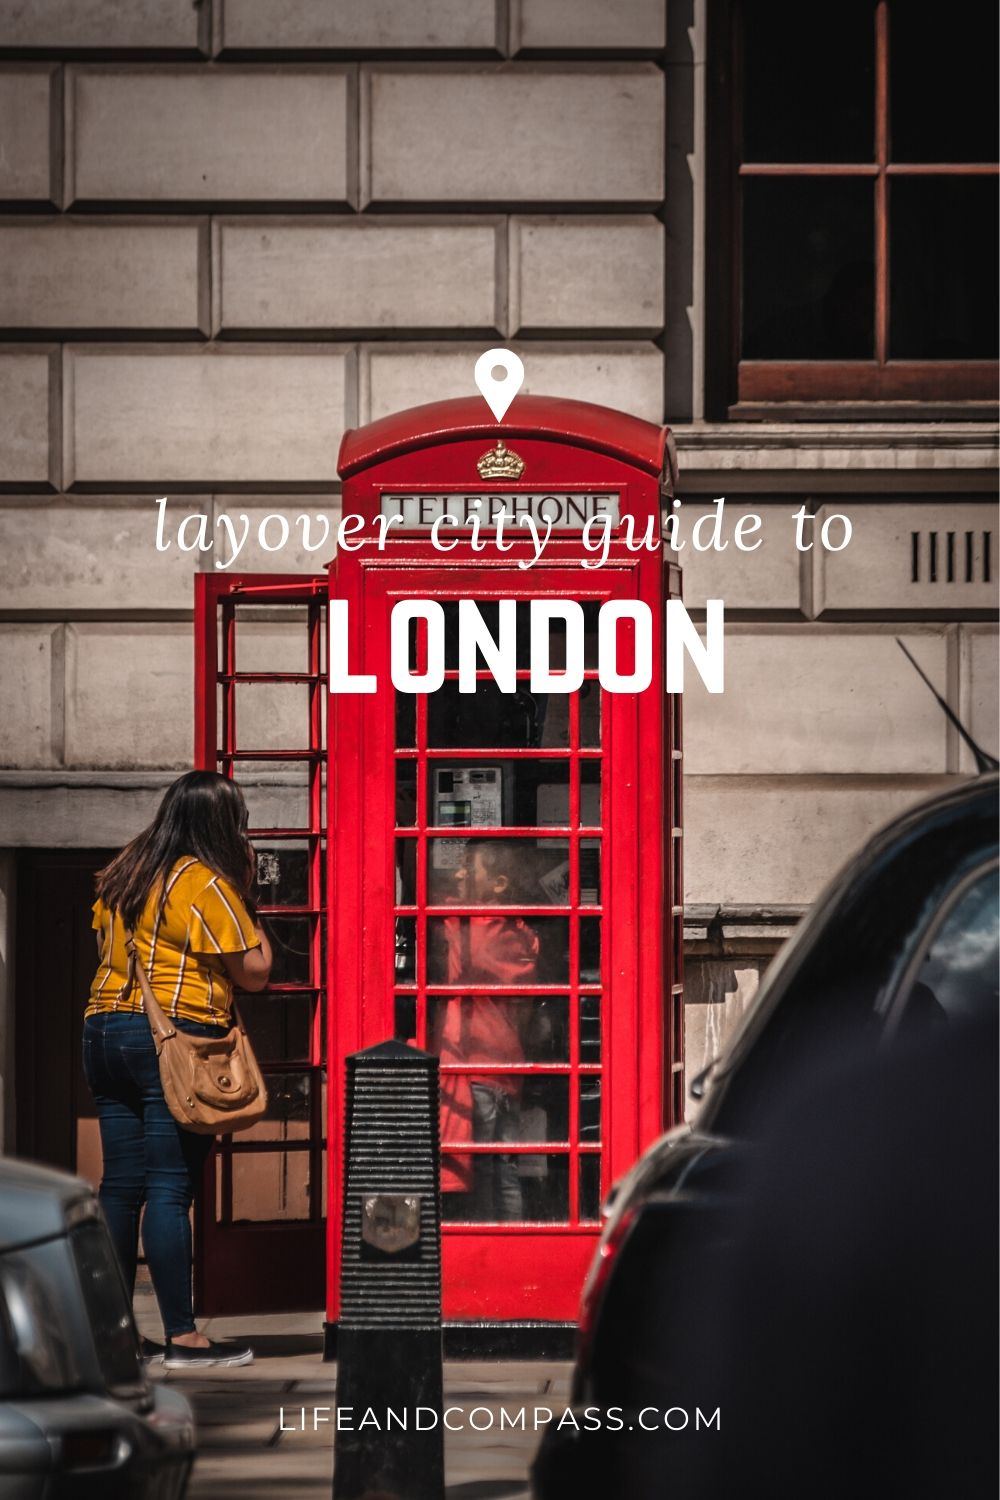 London is also conveniently located as a gateway to many European cities, and the familiarity most people would feel upon stepping into the UK for the first time makes it a popular tourist destination for many.